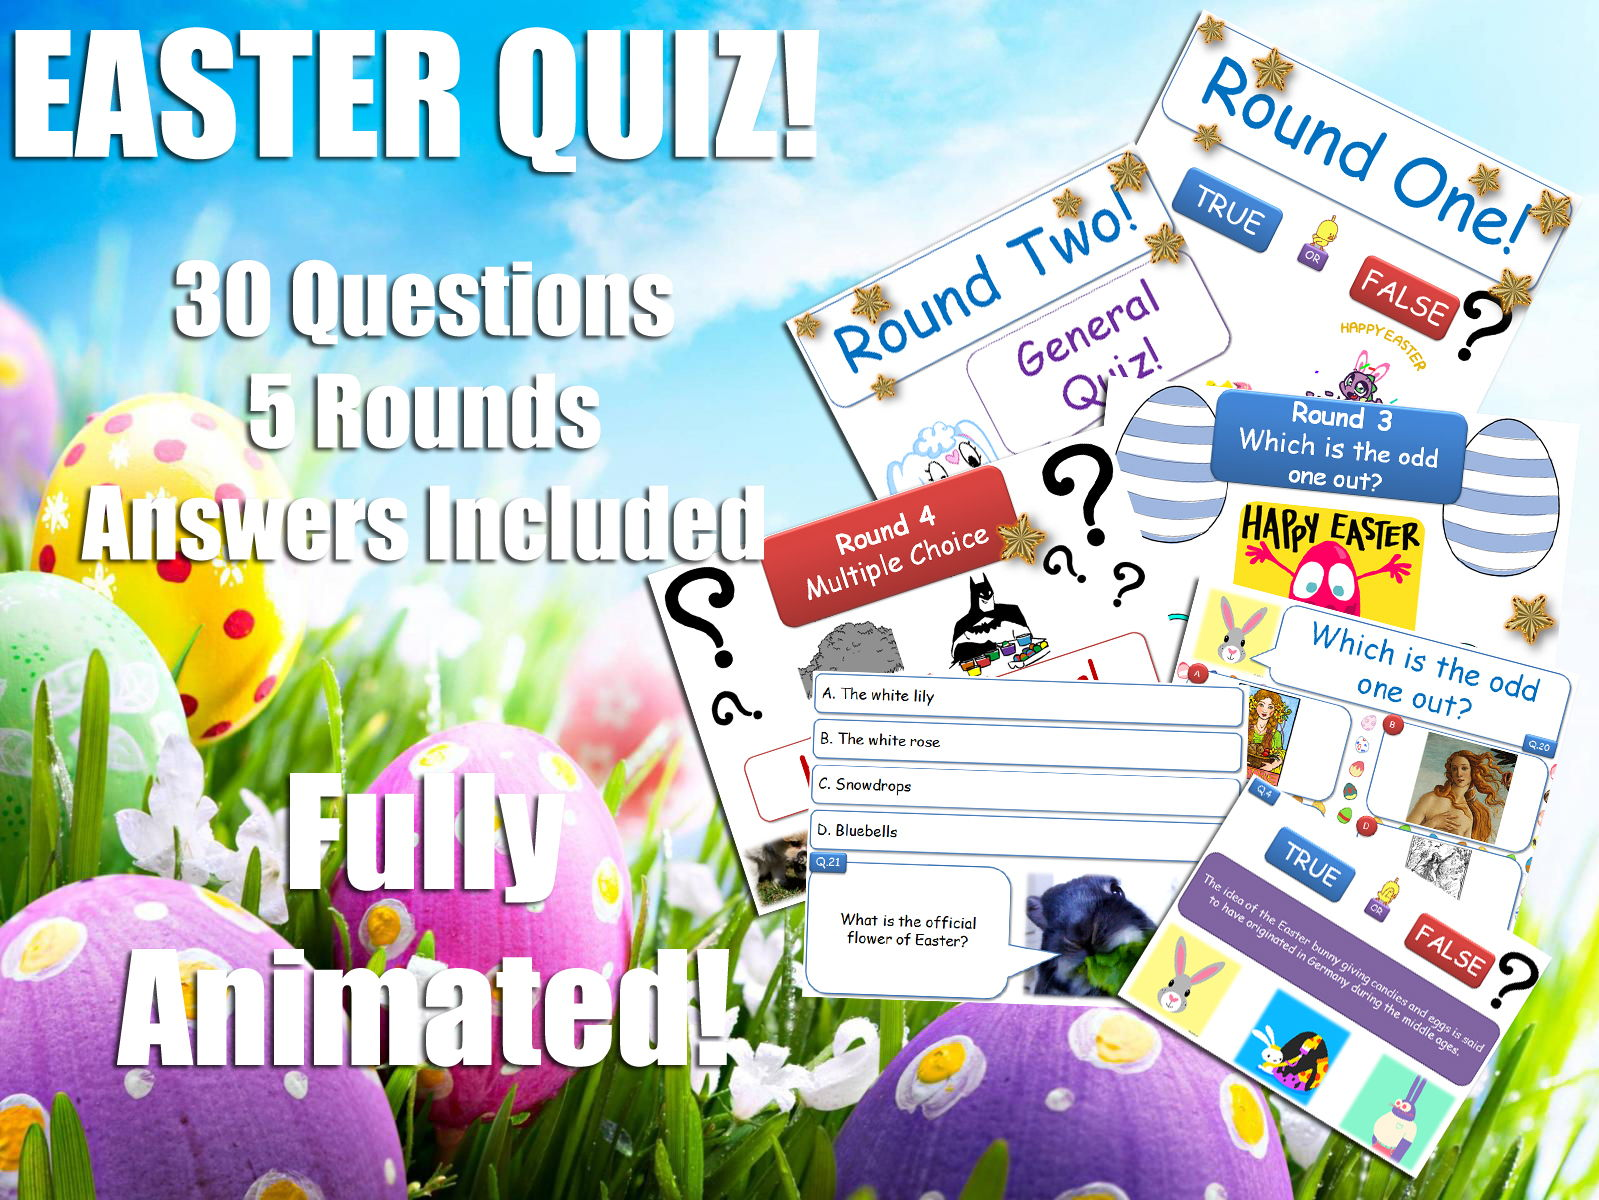 Form Tutor - Easter Quiz Bundle! [Form Time Activities!] P4C & Philosophy - Debates - Activities - Discussions - SMSC! [Special Debate Pack!]